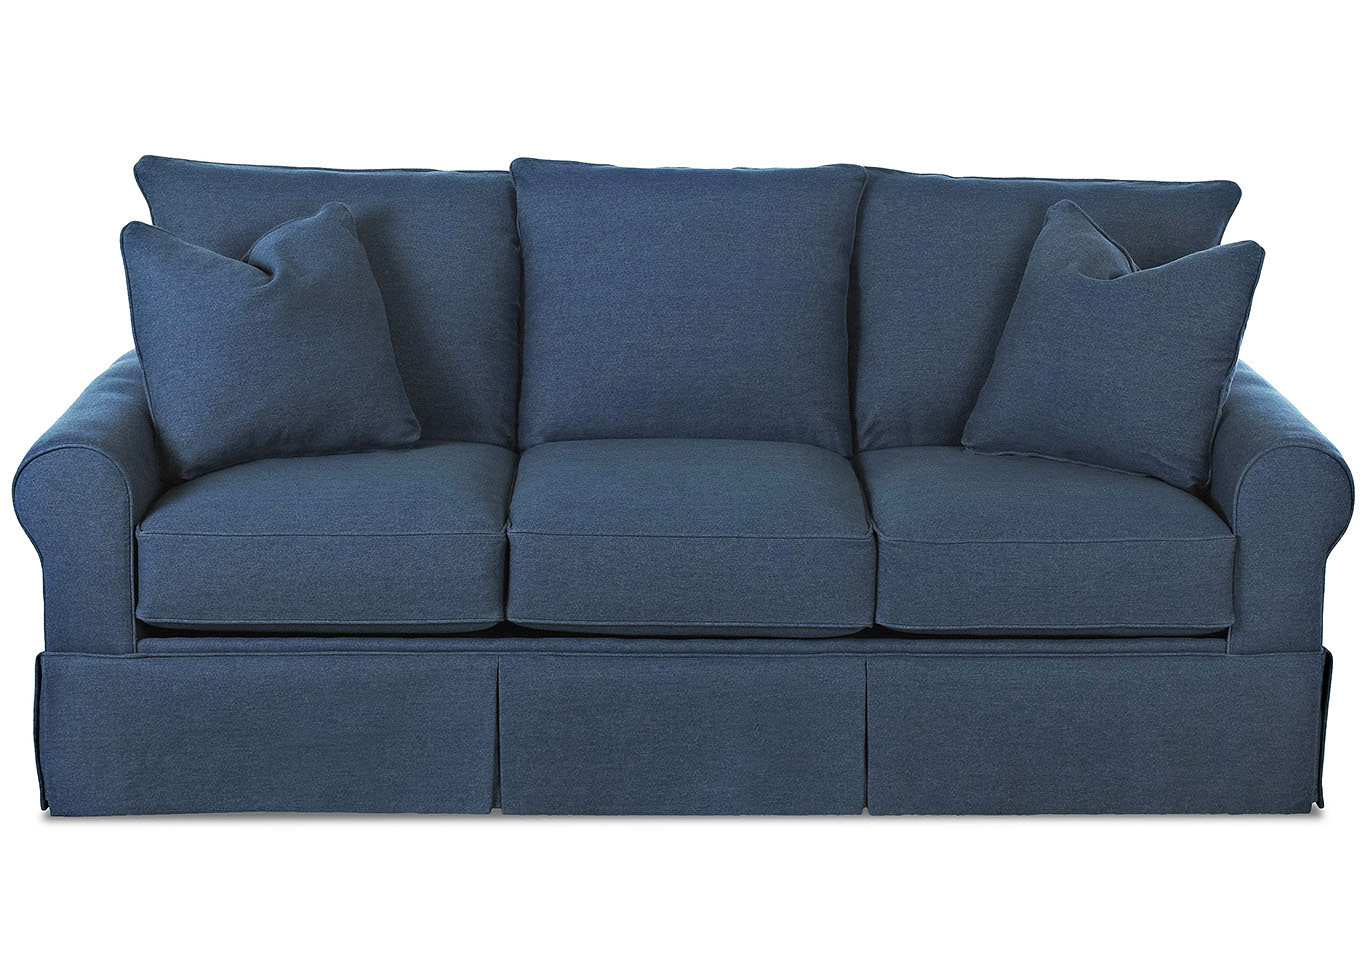 Brook Navy Blue Stationary Fabric Sofa,Klaussner Home Furnishings